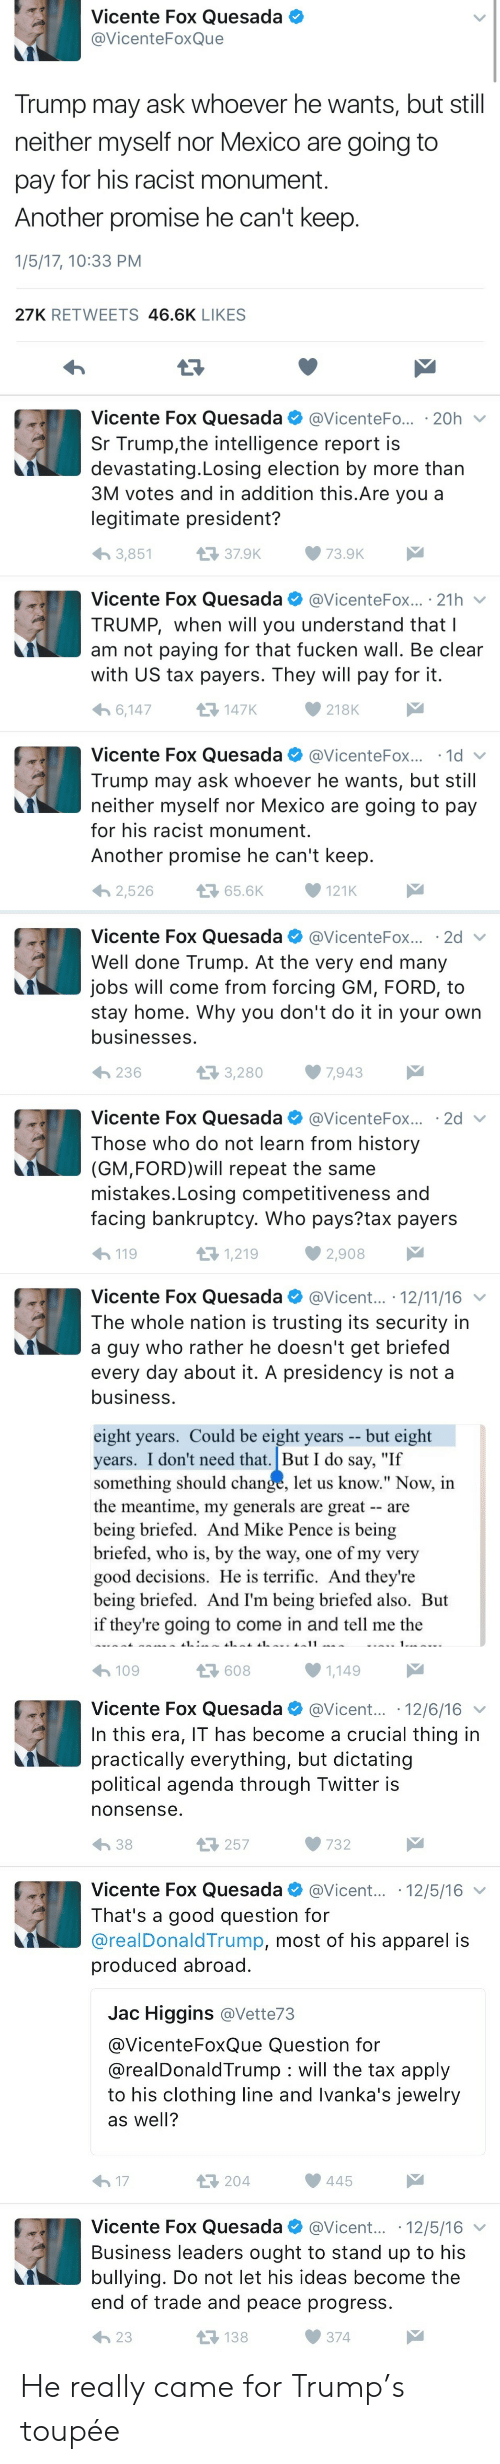 """toupee: Vicente Fox Quesada .  @VicenteFoxQue  Trump may ask whoever he wants, but still  neither myself nor Mexico are going to  pay for his racist monument.  Another promise he can't keep.  1/5/17, 10:33 PM  27K RETWEETS 46.6K LIKES   Vicente Fox Quesada @VicenteFo.... 20h  Sr Trump,the intelligence report is  devastating.Losing election by more than  3M votes and in addition this.Are you a  legitimate president?  3,851  37.9K73.9K  Vicente Fox Quesada。@VicenteFox.. . 21 h ﹀  TRUMP, when will you understand that l  am not paying for that fucken wall. Be clear  with US tax payers. They will pay for it  6,147  다 147K  218K  Vicente Fox Quesada @VicenteFox...-1d ﹀  Trump may ask whoever he wants, but still  neither myself nor Mexico are going to pay  for his racist monument  Another promise he can't keep  わ2,526 656K ·121K   Vicente Fox Quesada @VicenteFox.. ·2d ﹀  Well done Trump. At the very end many  jobs will come from forcing GM, FORD, to  stay home. Why you don't do it in your own  businesses  236  3,280  ·7,943  Vicente Fox Quesada @VicenteFox.. . 2d  Those who do not learn from history  (GM,FORD)will repeat the same  mistakes.Losing competitiveness and  facing bankruptcy. Who pays?tax payers  119  1,219  2,908   Vicente Fox QuesadaVicent... 12/11/16  The whole nation is trusting its security in  a guy who rather he doesn't get briefed  every day about it. A presidency is not a  business  eight years. Could be eight years -- but eight  years. I don't need that.But I do say, """"If  something should change, let us know."""" Now, in  the meantime, my generals are great are  being briefed. And Mike Pence is being  briefed, who is, by the way, one of my very  good decisions. He is terrific. And they're  being briefed. And I'm being briefed also. But  if they're going to come in and tell me the  41.  109  608  1,149   Vicente Fox Quesada@Vicent... 12/6/16  In this era, IT has become a crucial thing in  practically everything, but dictating  political agenda through Twitt"""